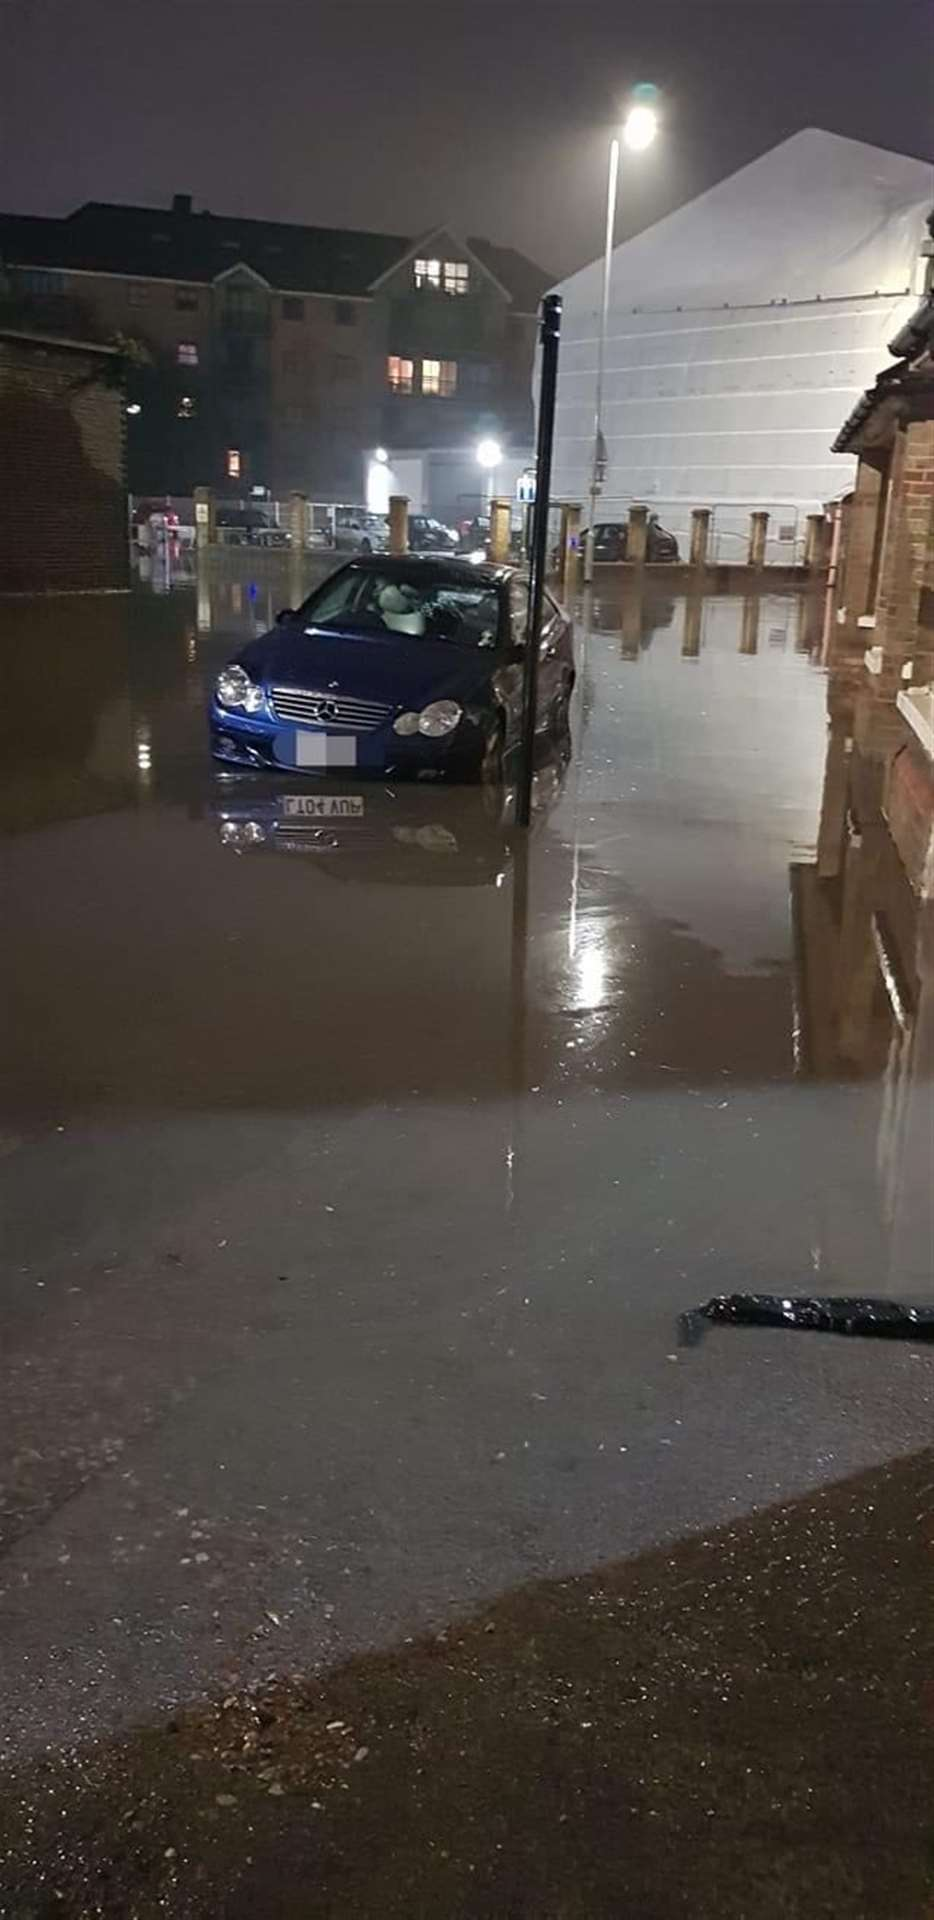 Dane Street flooded near the Allinson flour mill exit. Picture: Emma Hilliard